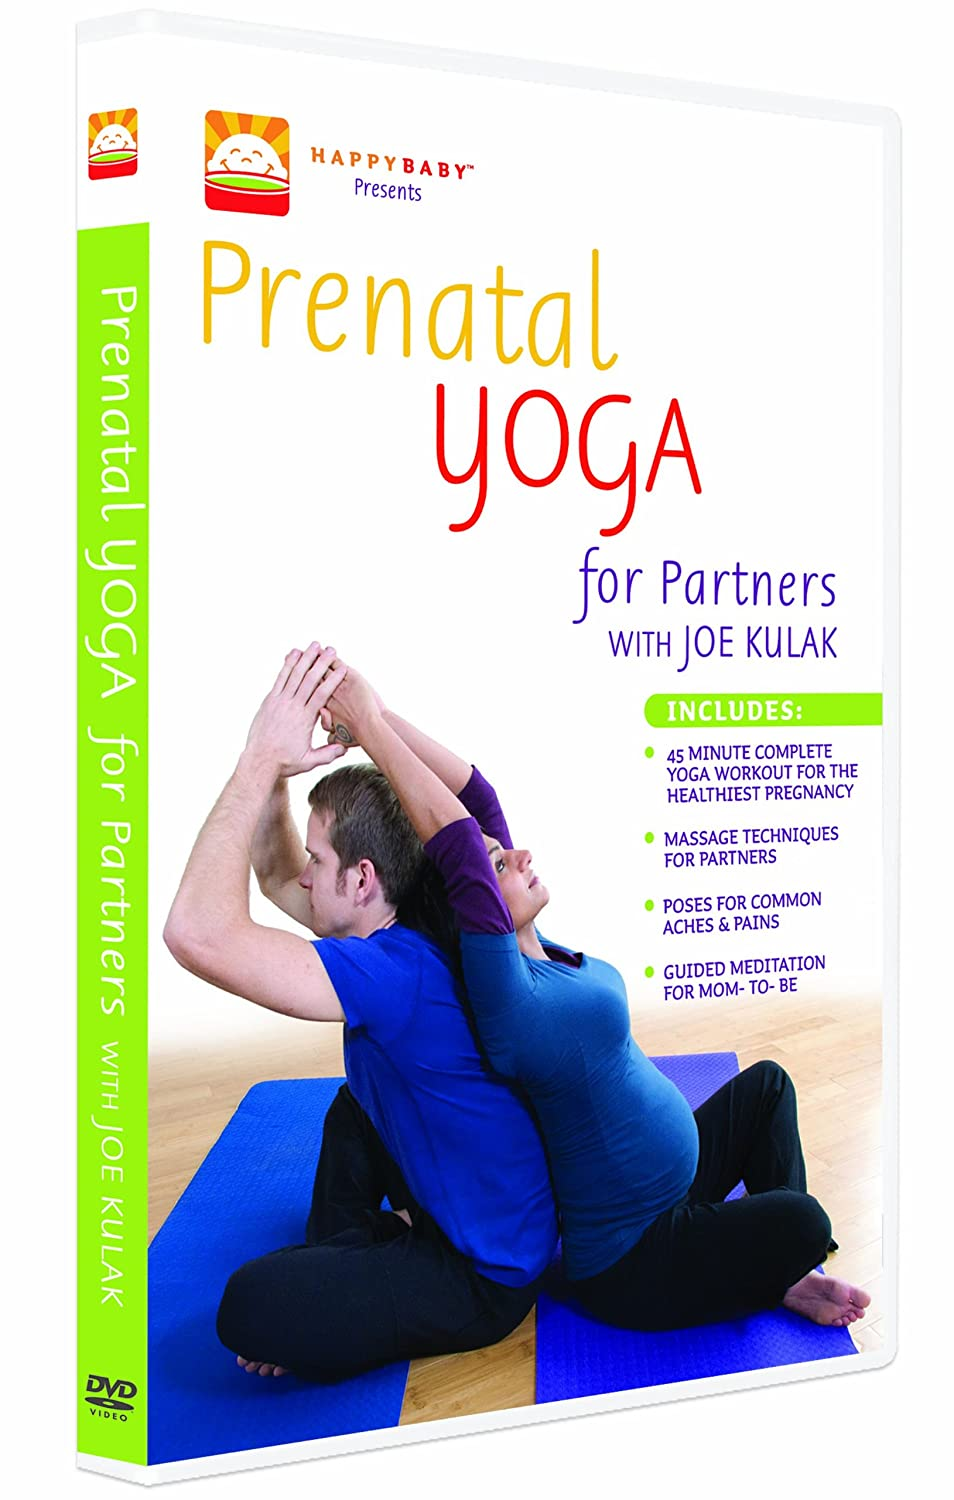 Amazon.com: Prenatal Yoga for Partners: Joe Kulak, Shazi ...